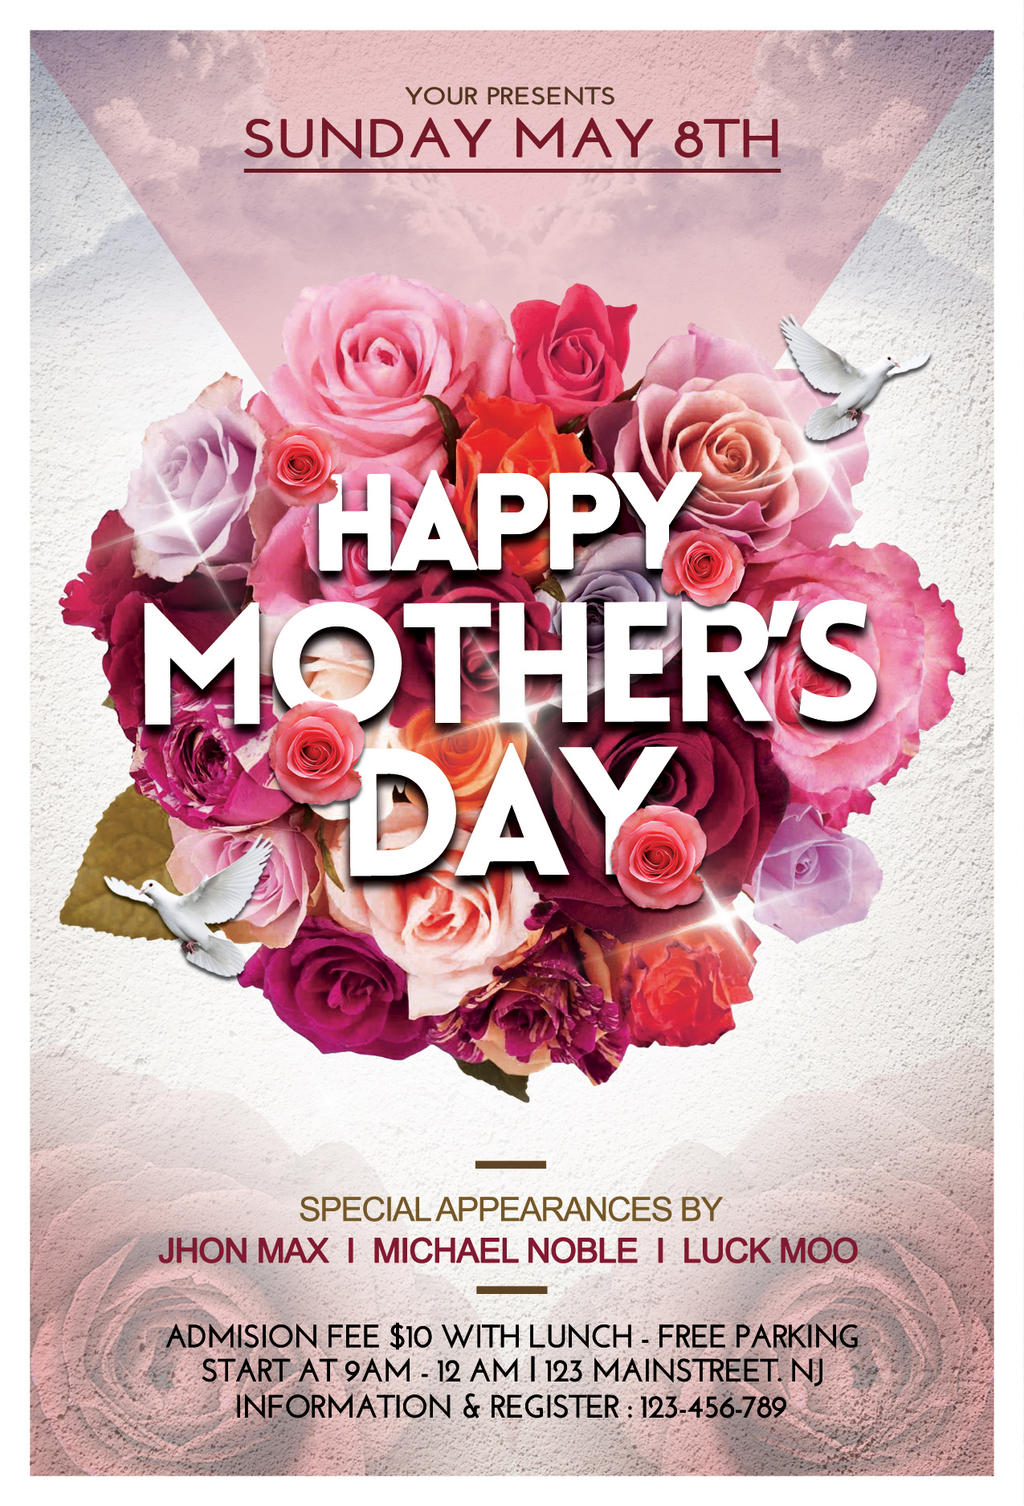 Mothers Day Flyer Template by ayumadesign on DeviantArt – Lunch Flyer Template